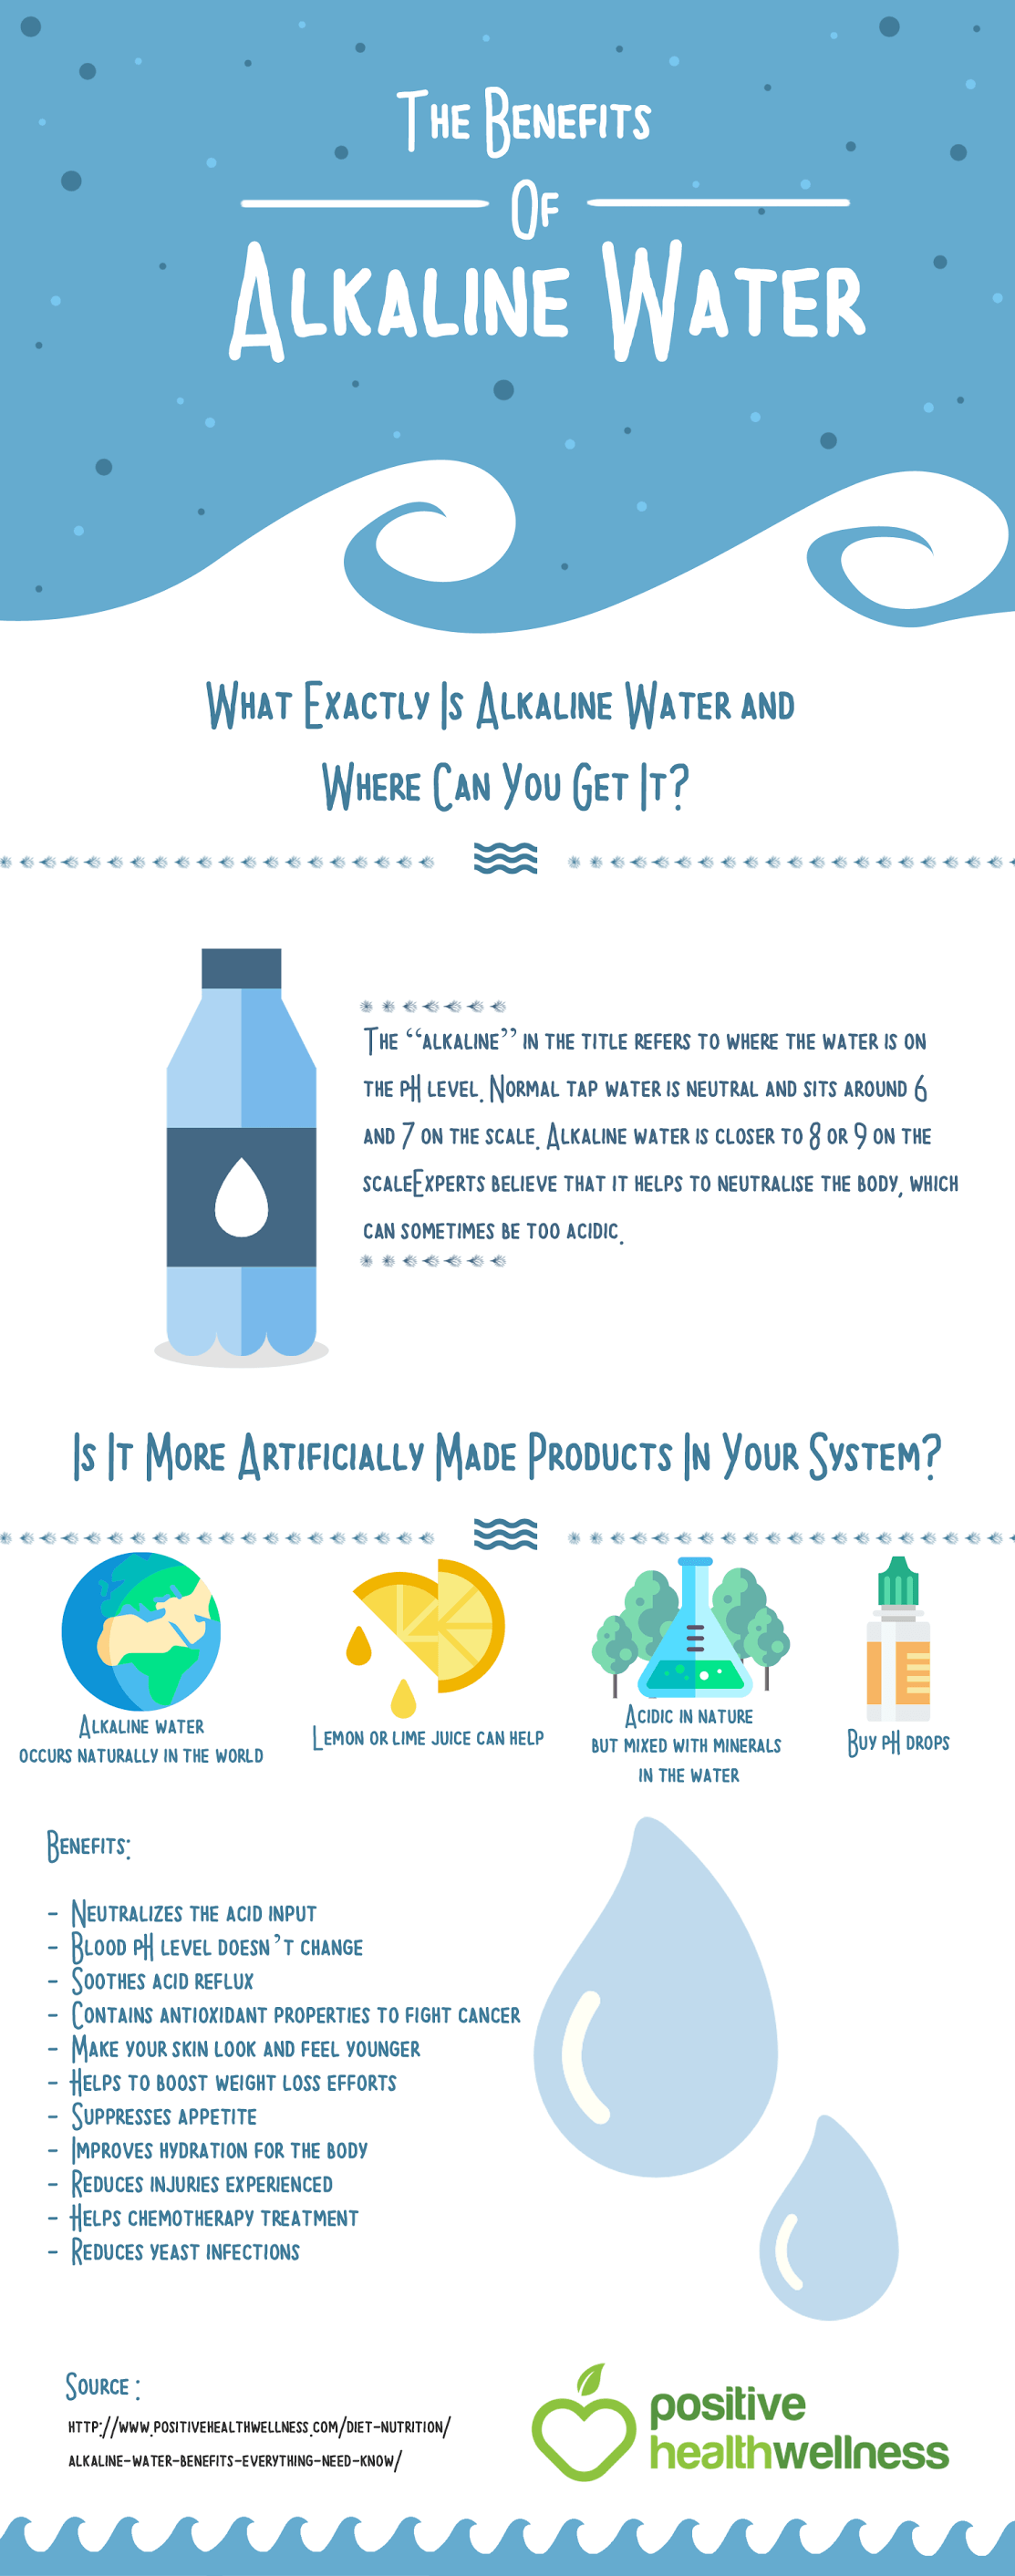 Alkaline Water - Alkaline Water Benefits (Everything You Need To Know)